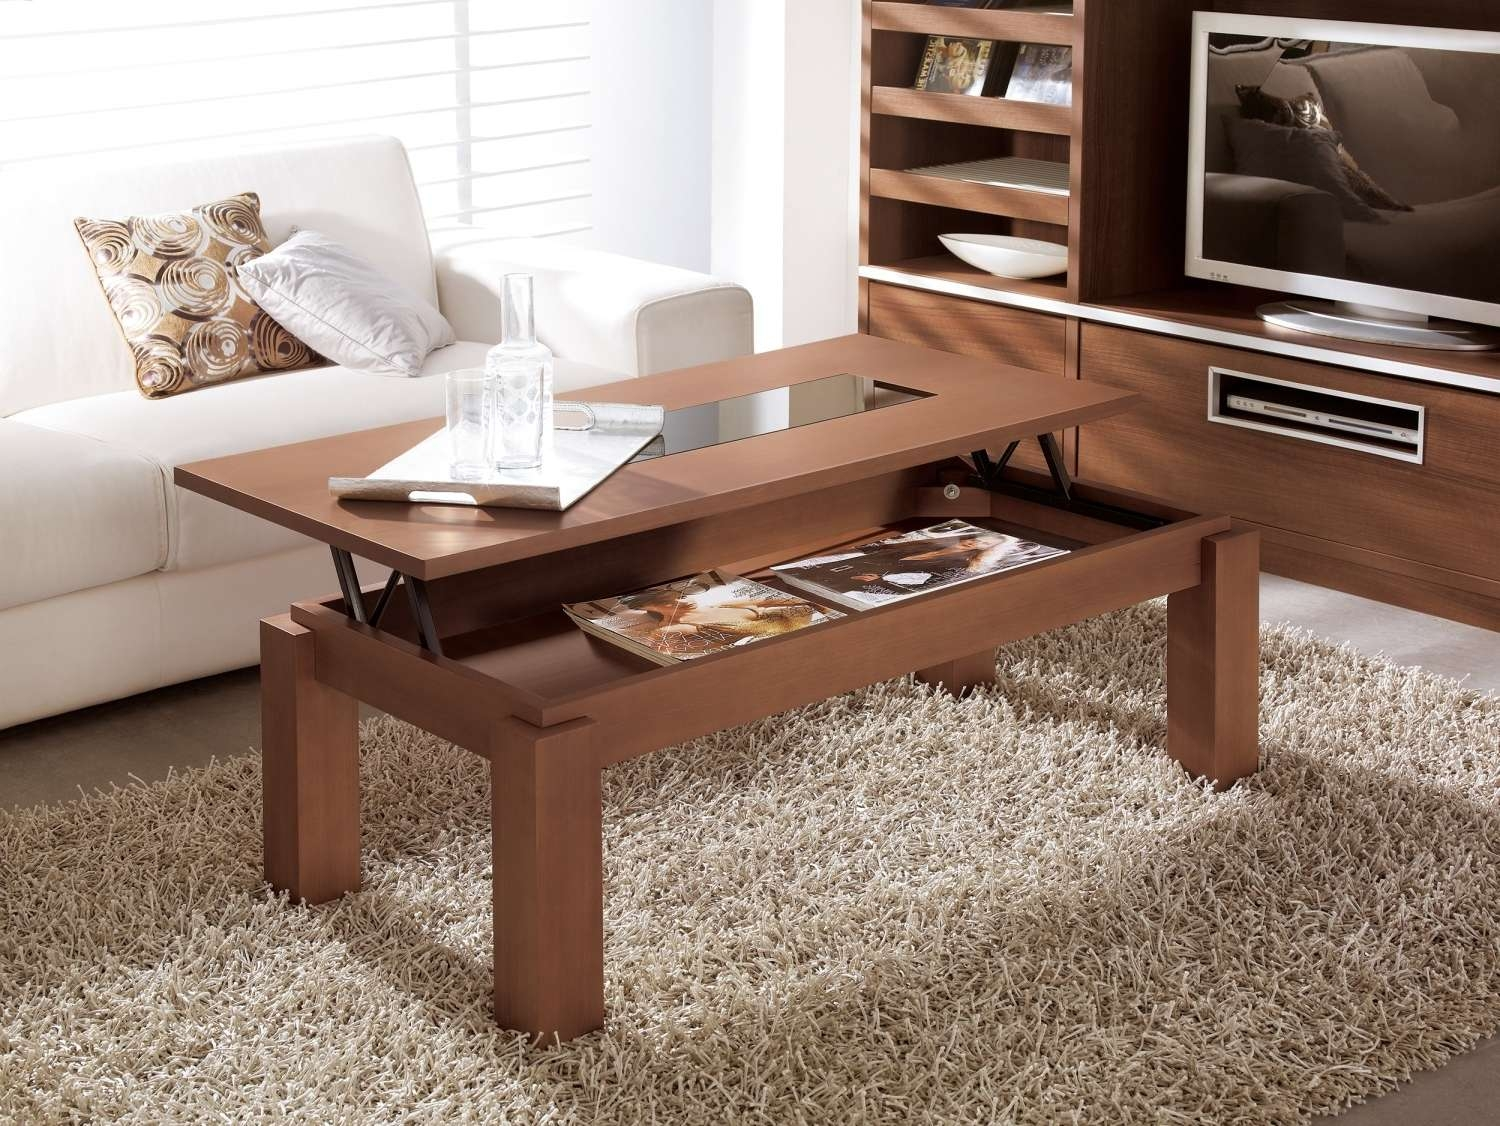 Charming Modern Lift Up Coffee Table With Hard Wood Materials Regarding Newest Coffee Tables Top Lifts Up (View 19 of 20)